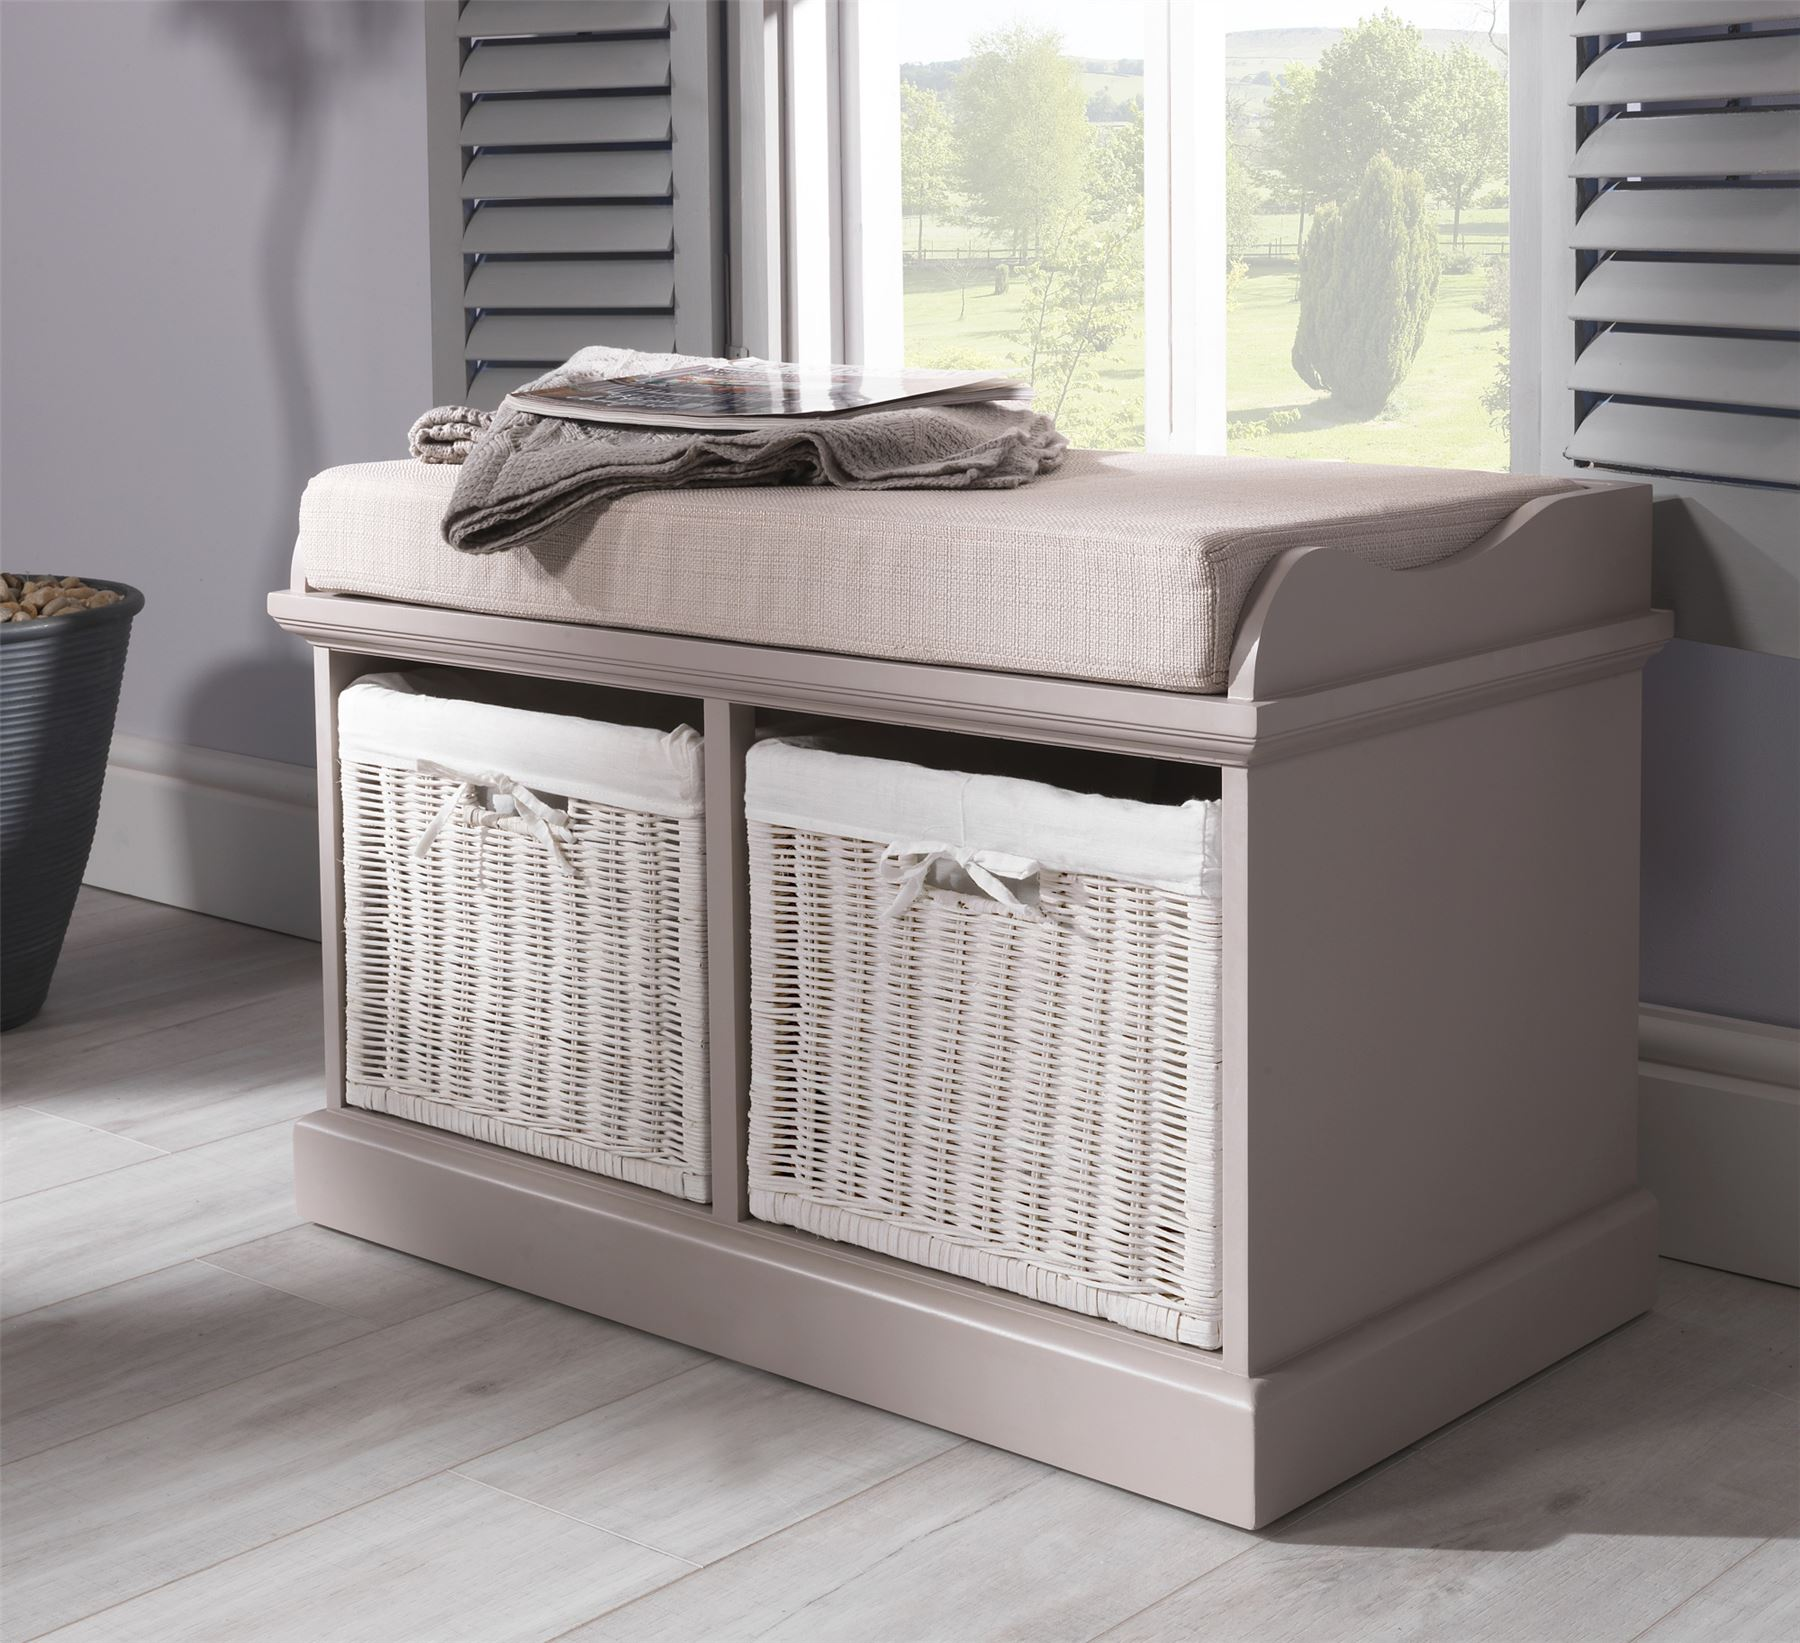 Tetbury bench with 2 white baskets hallway storage bench with cushion 4 colours ebay Storage benches